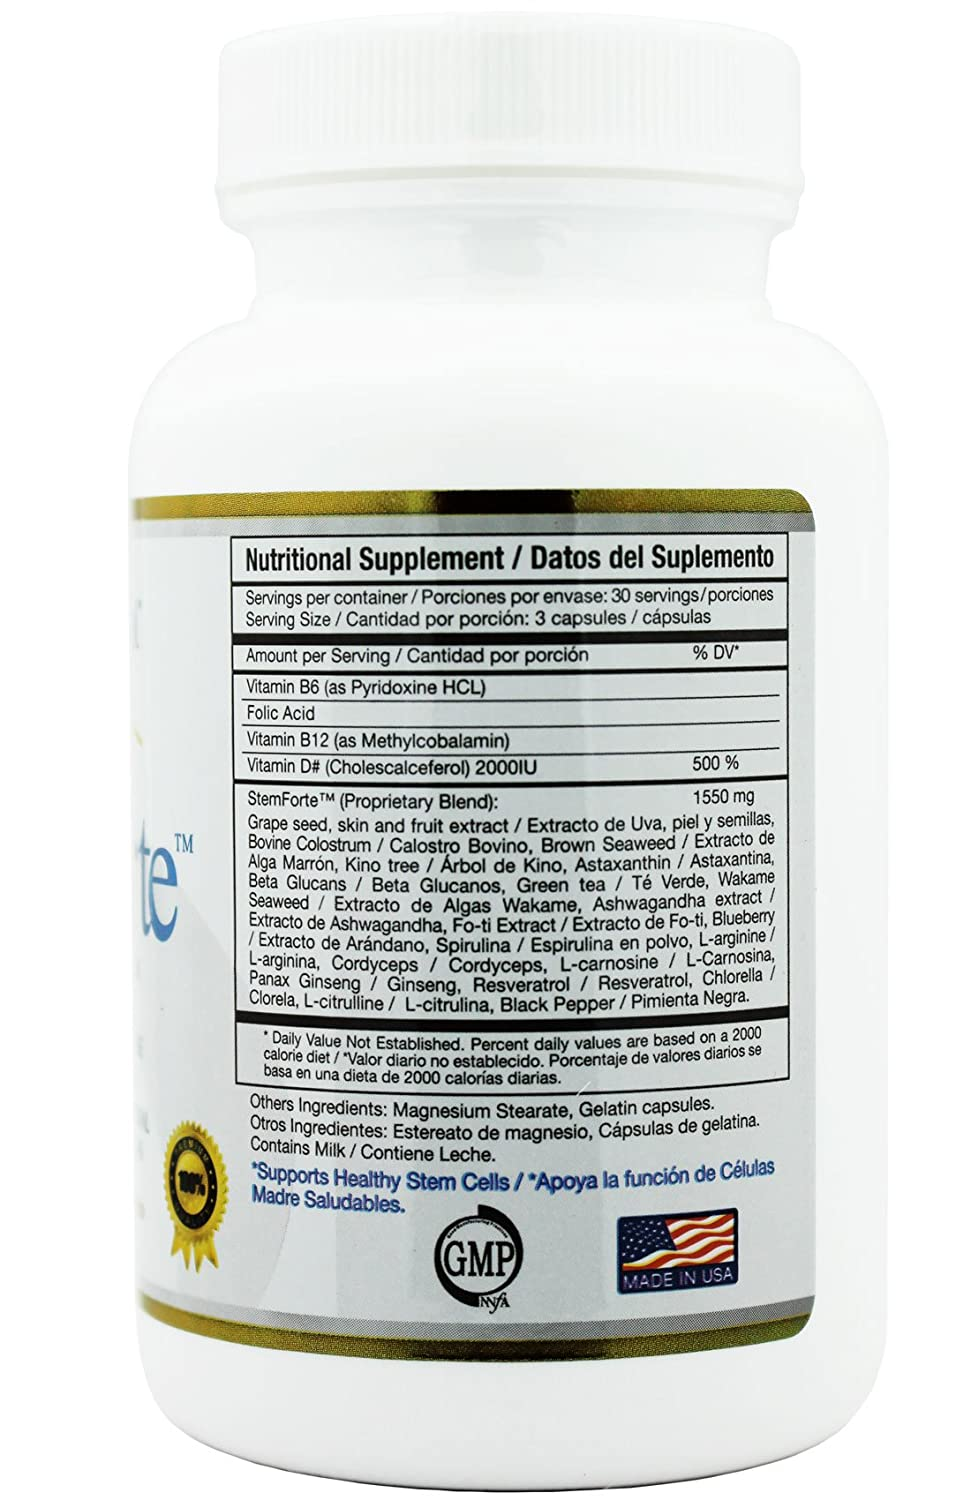 Amazon.com: Stemforte - 2 Bottles - 90 Caps - BEST Advance Stem Cell Nutrition - Promotes Natural Release of Adult Stem Cells for OVERALL WELL-BEING.